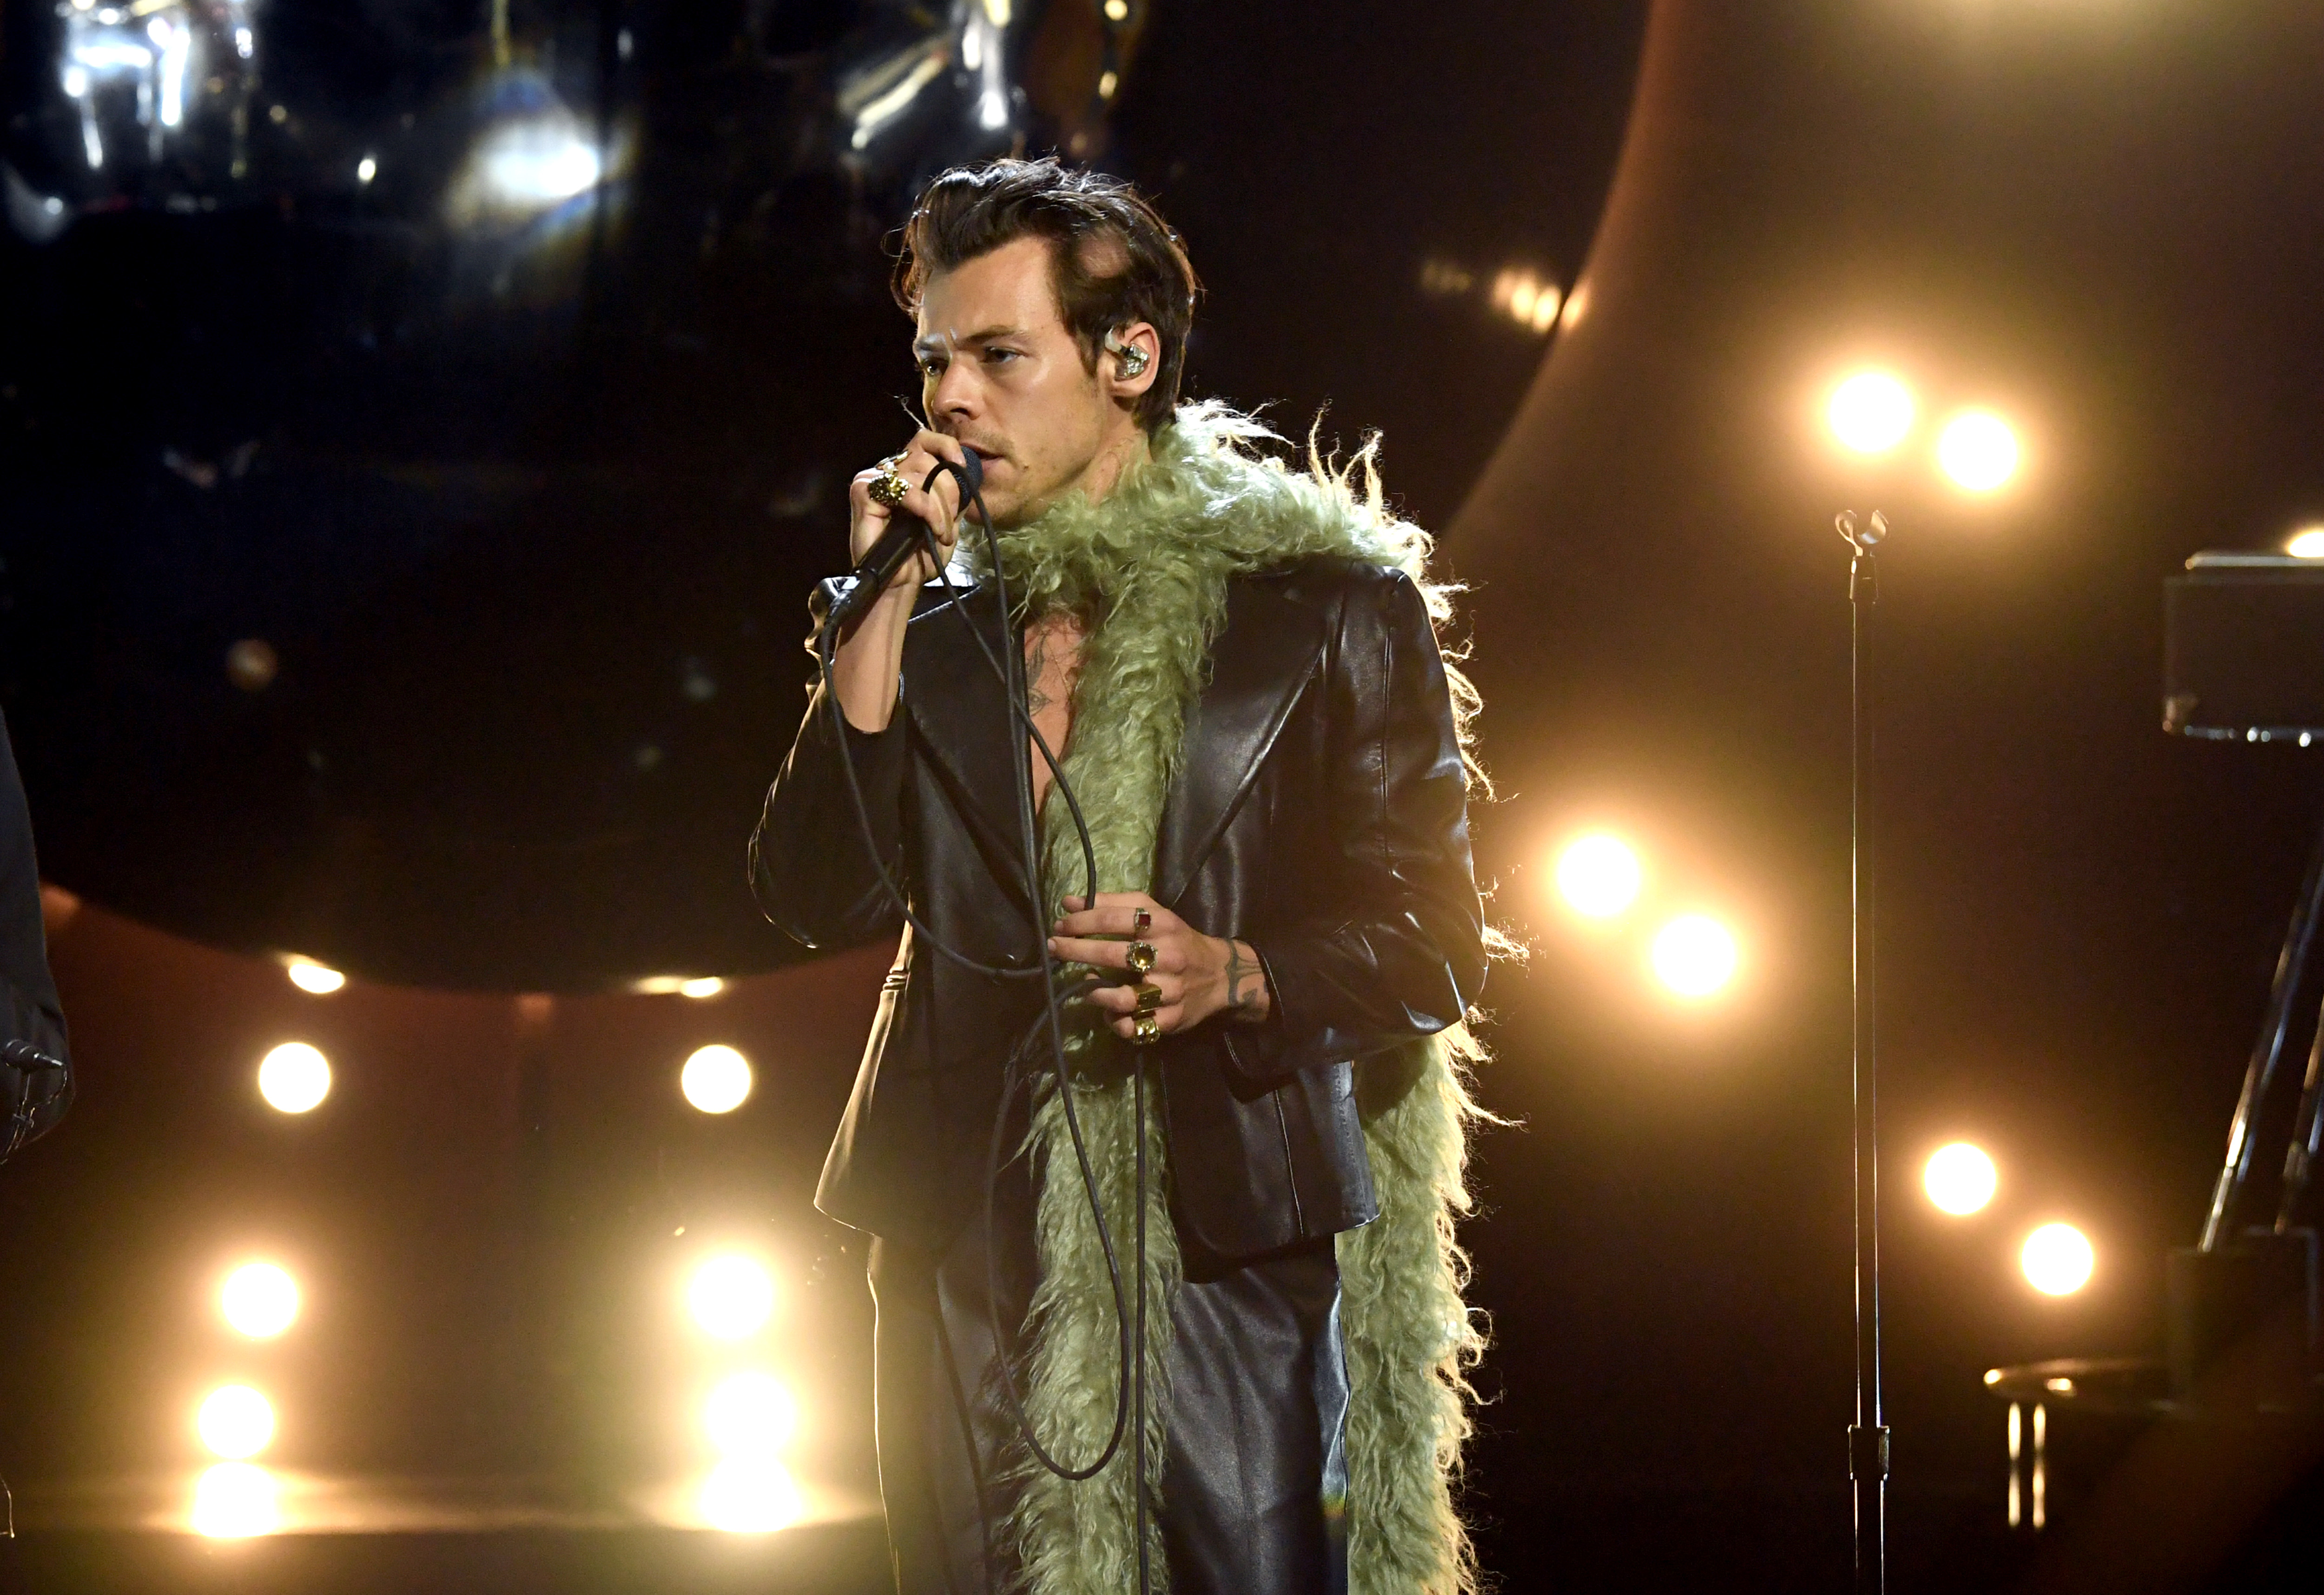 LOS ANGELES, CALIFORNIA: In this image released on March 14, Harry Styles performs onstage during the 63rd Annual GRAMMY Awards at Los Angeles Convention Center in Los Angeles, California and broadcast on March 14, 2021. (Photo by Kevin Winter/Getty Images for The Recording Academy)